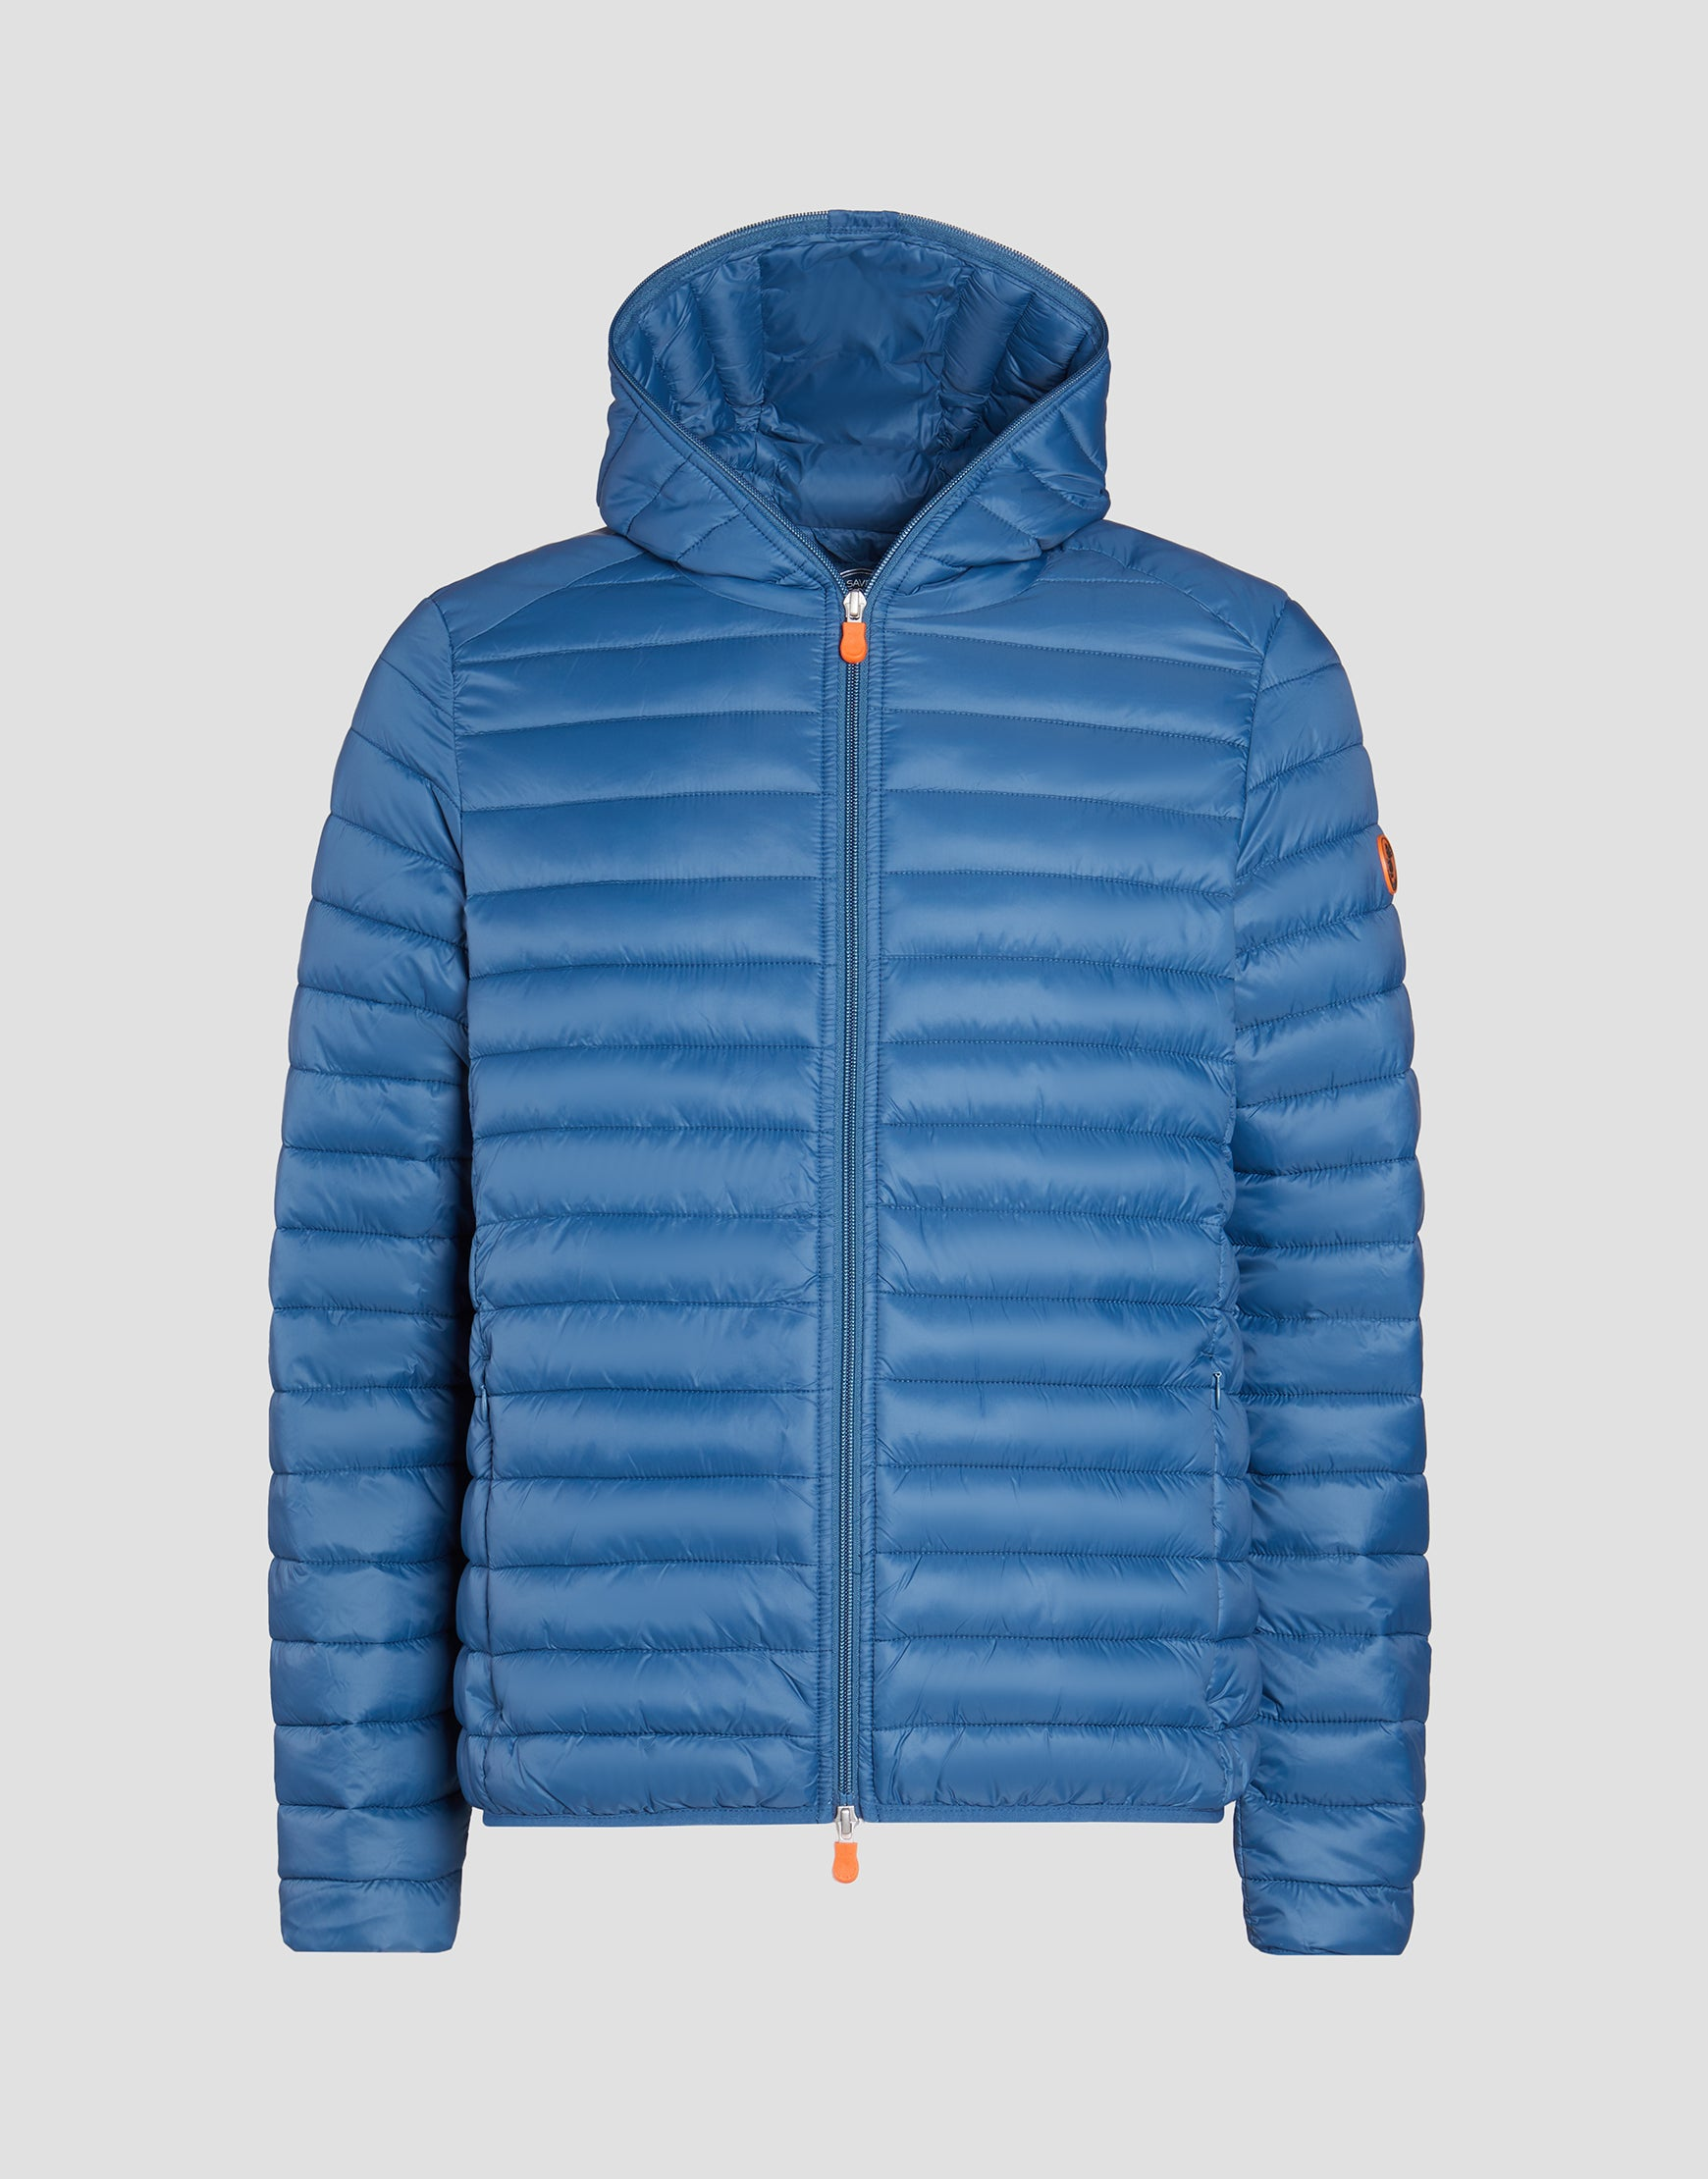 6867871227d9 Save The Duck Mens Jacket - Save the Duck